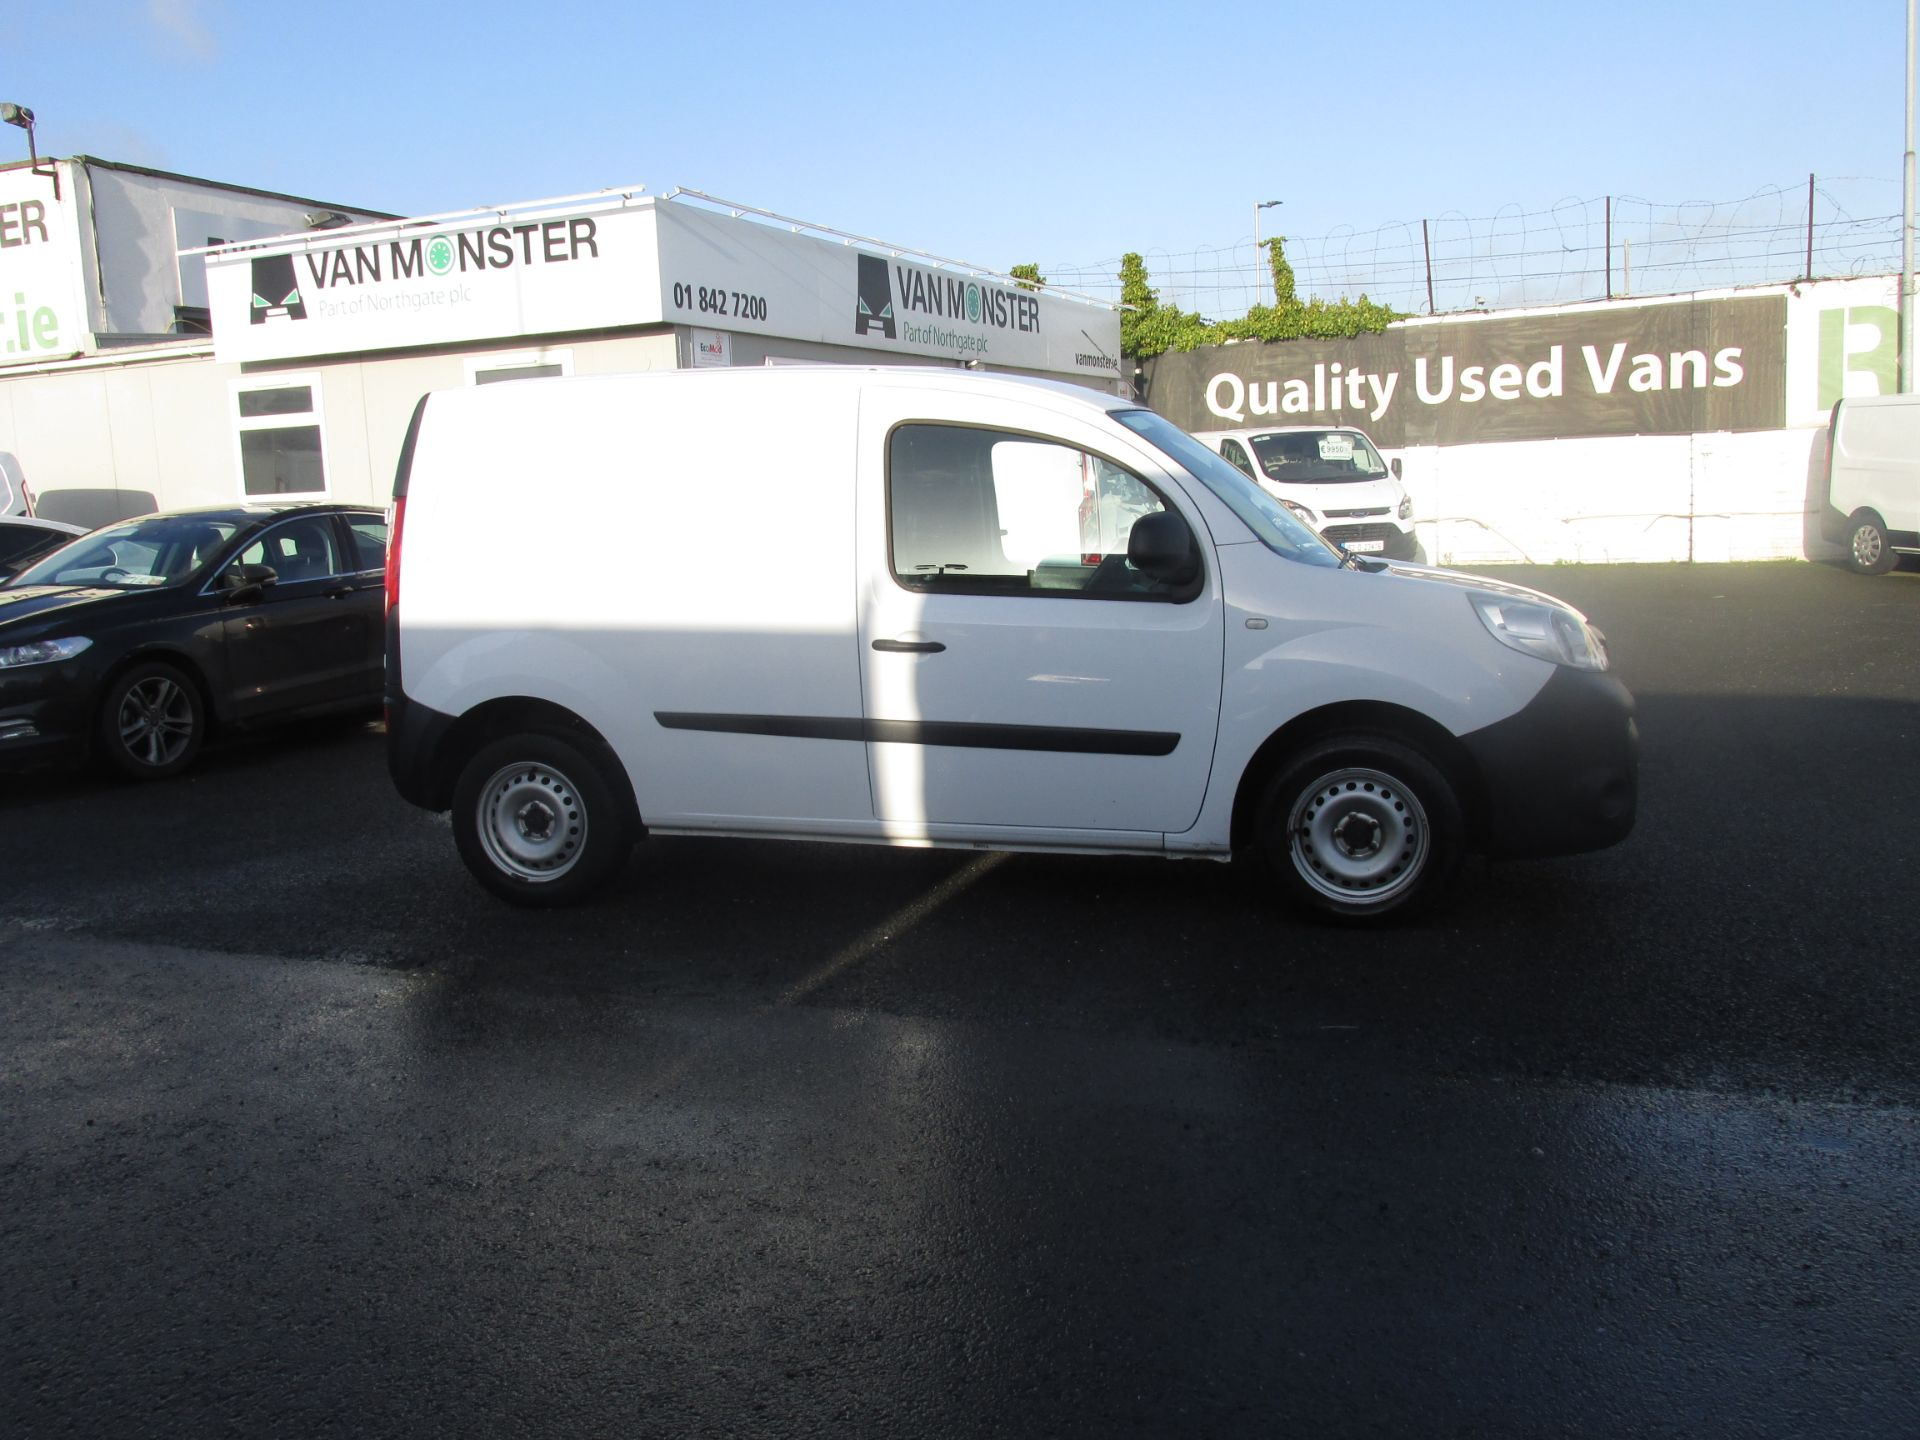 2016 Renault Kangoo 1.5 DCI 75 Business 2DR  - LOW MILES - ONE OWNER -  FSH - (162D10269) Image 2